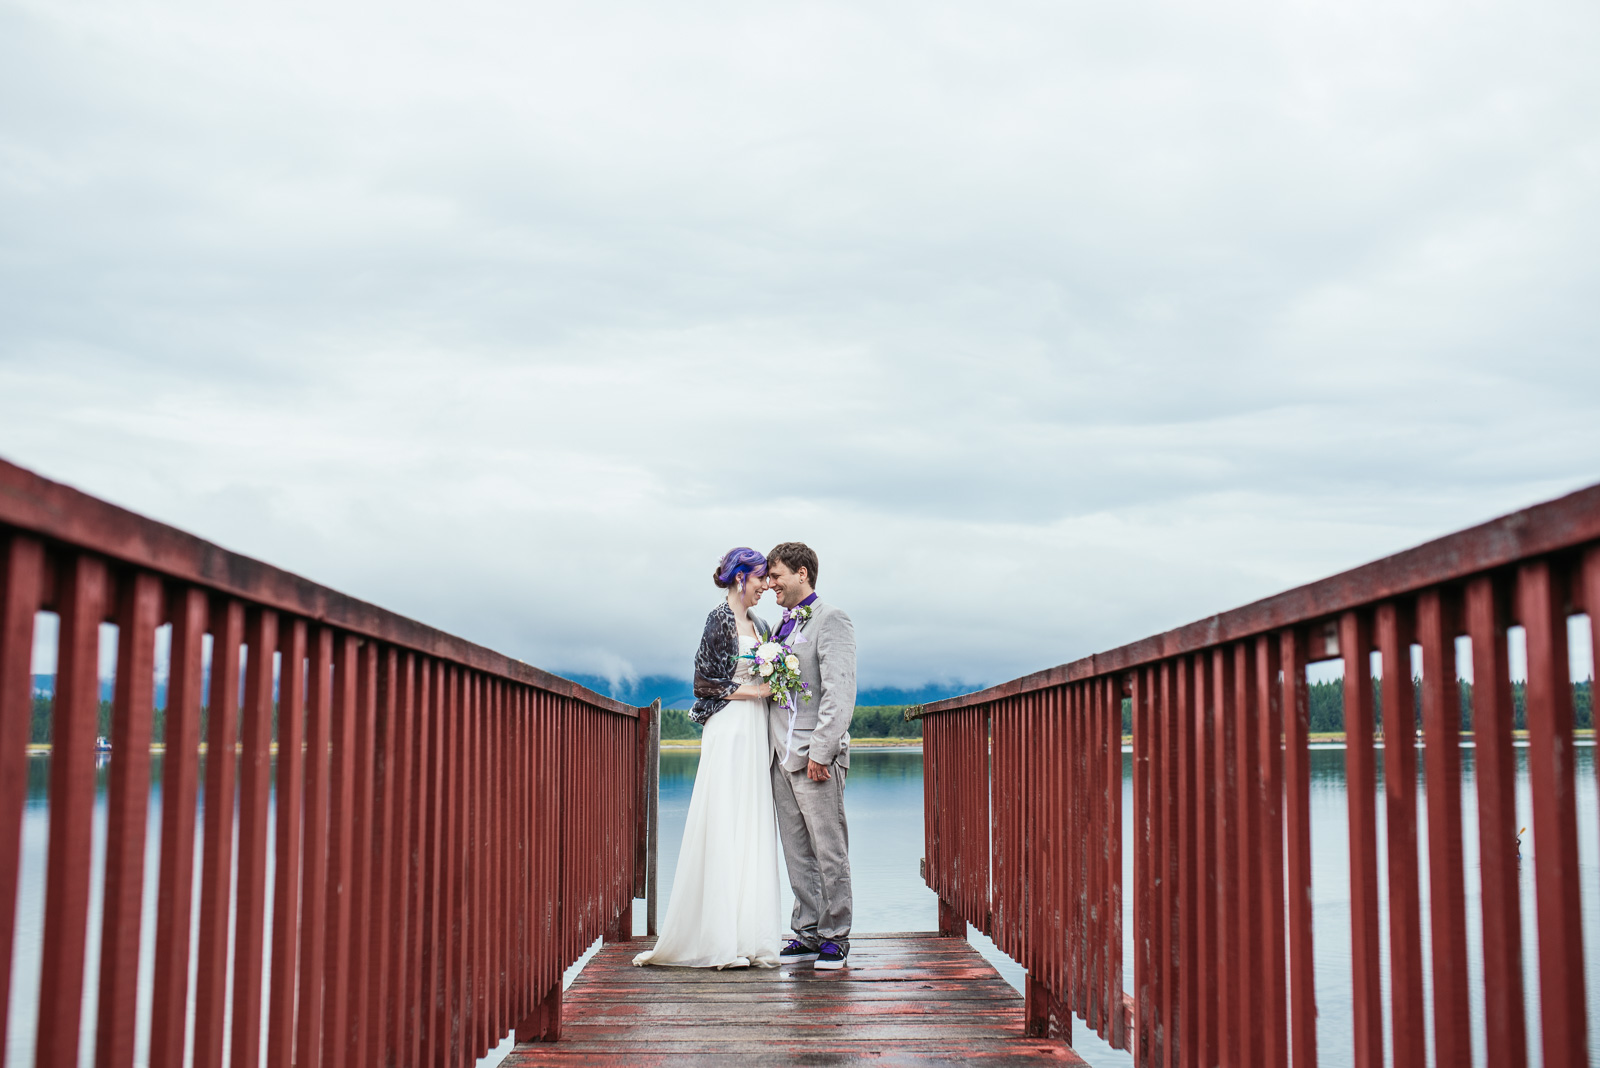 bc-wedding-photographers-kitimat-minette-bay-lodge-wedding-31.jpg